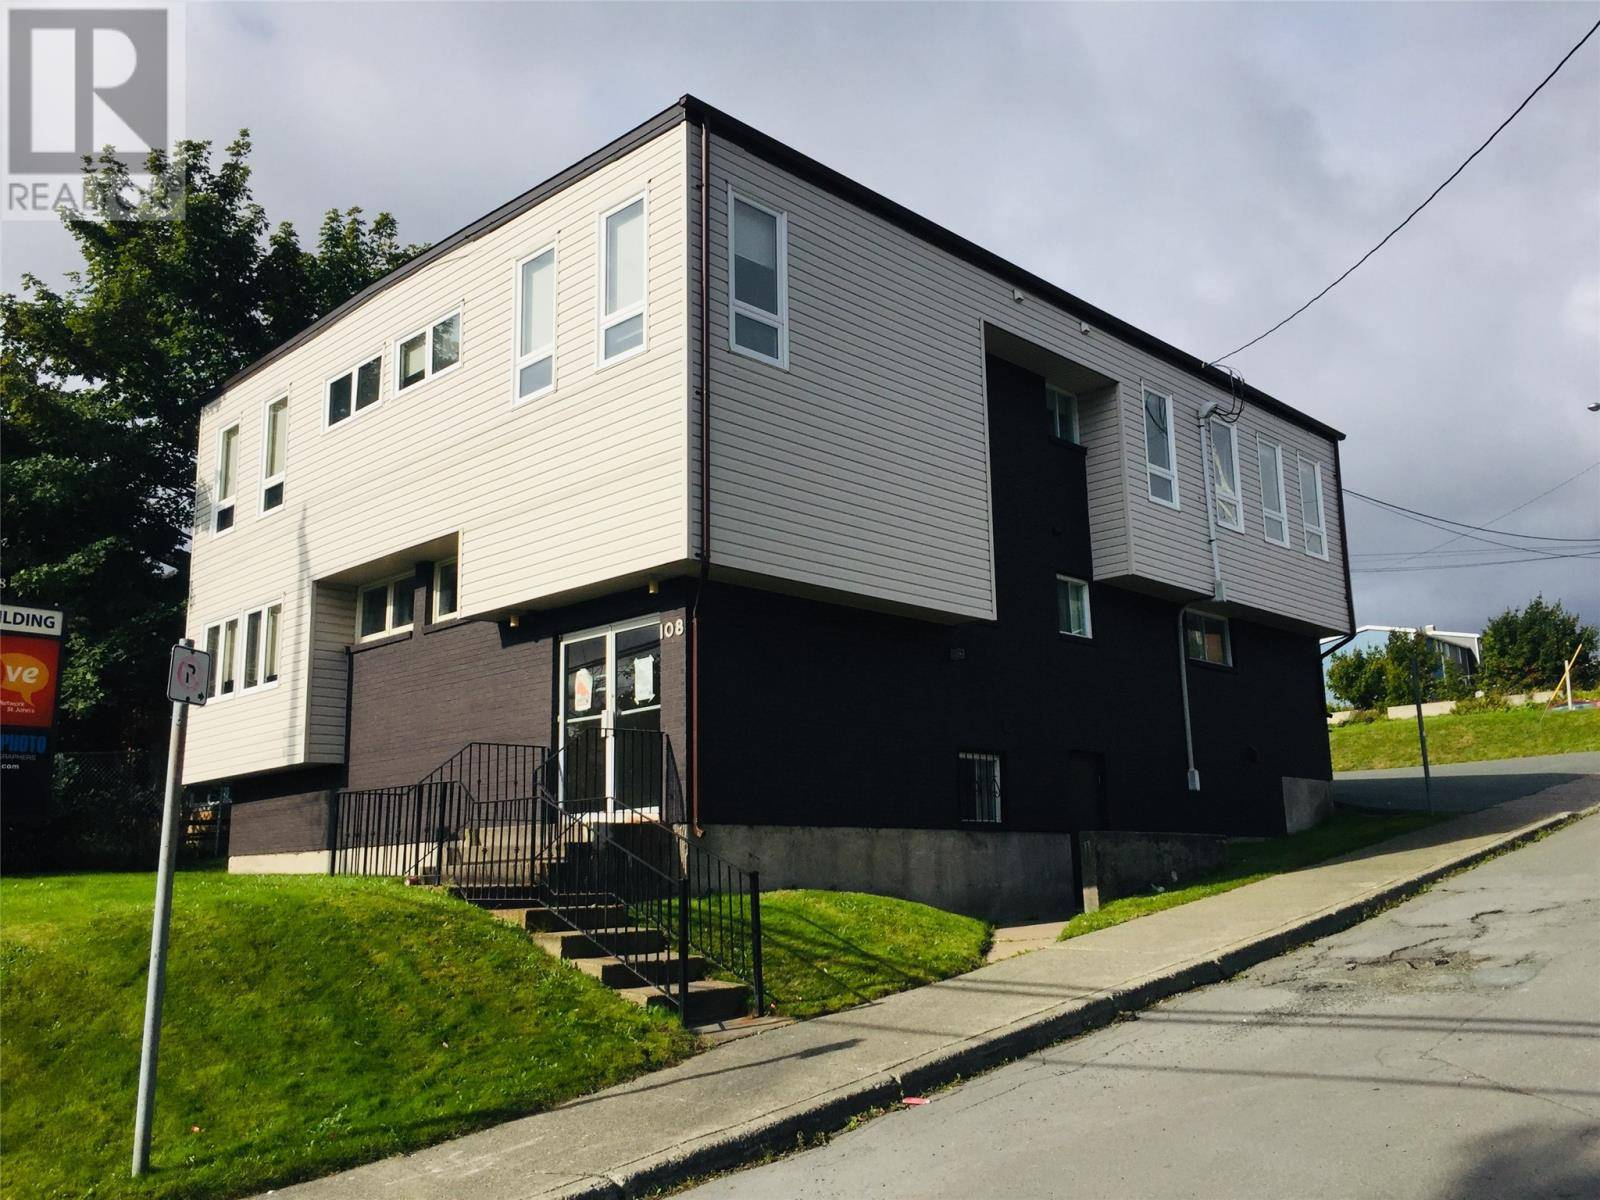 Home for rent at 108 Lemarchant Rd St. John's Newfoundland - MLS: 1204593